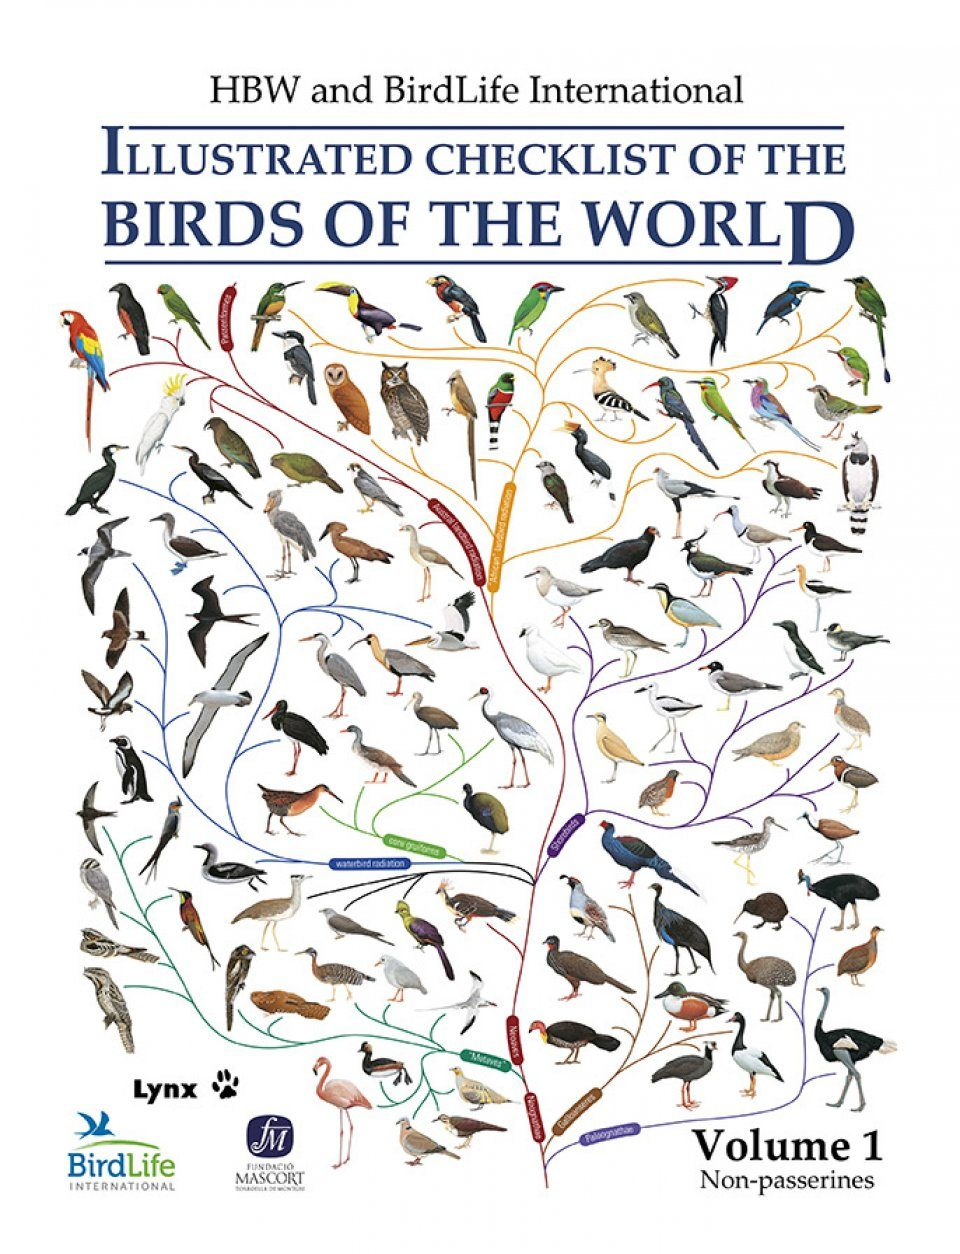 HBW and Birdlife International Illustrated Checklist of the Birds of the World, Volume 1